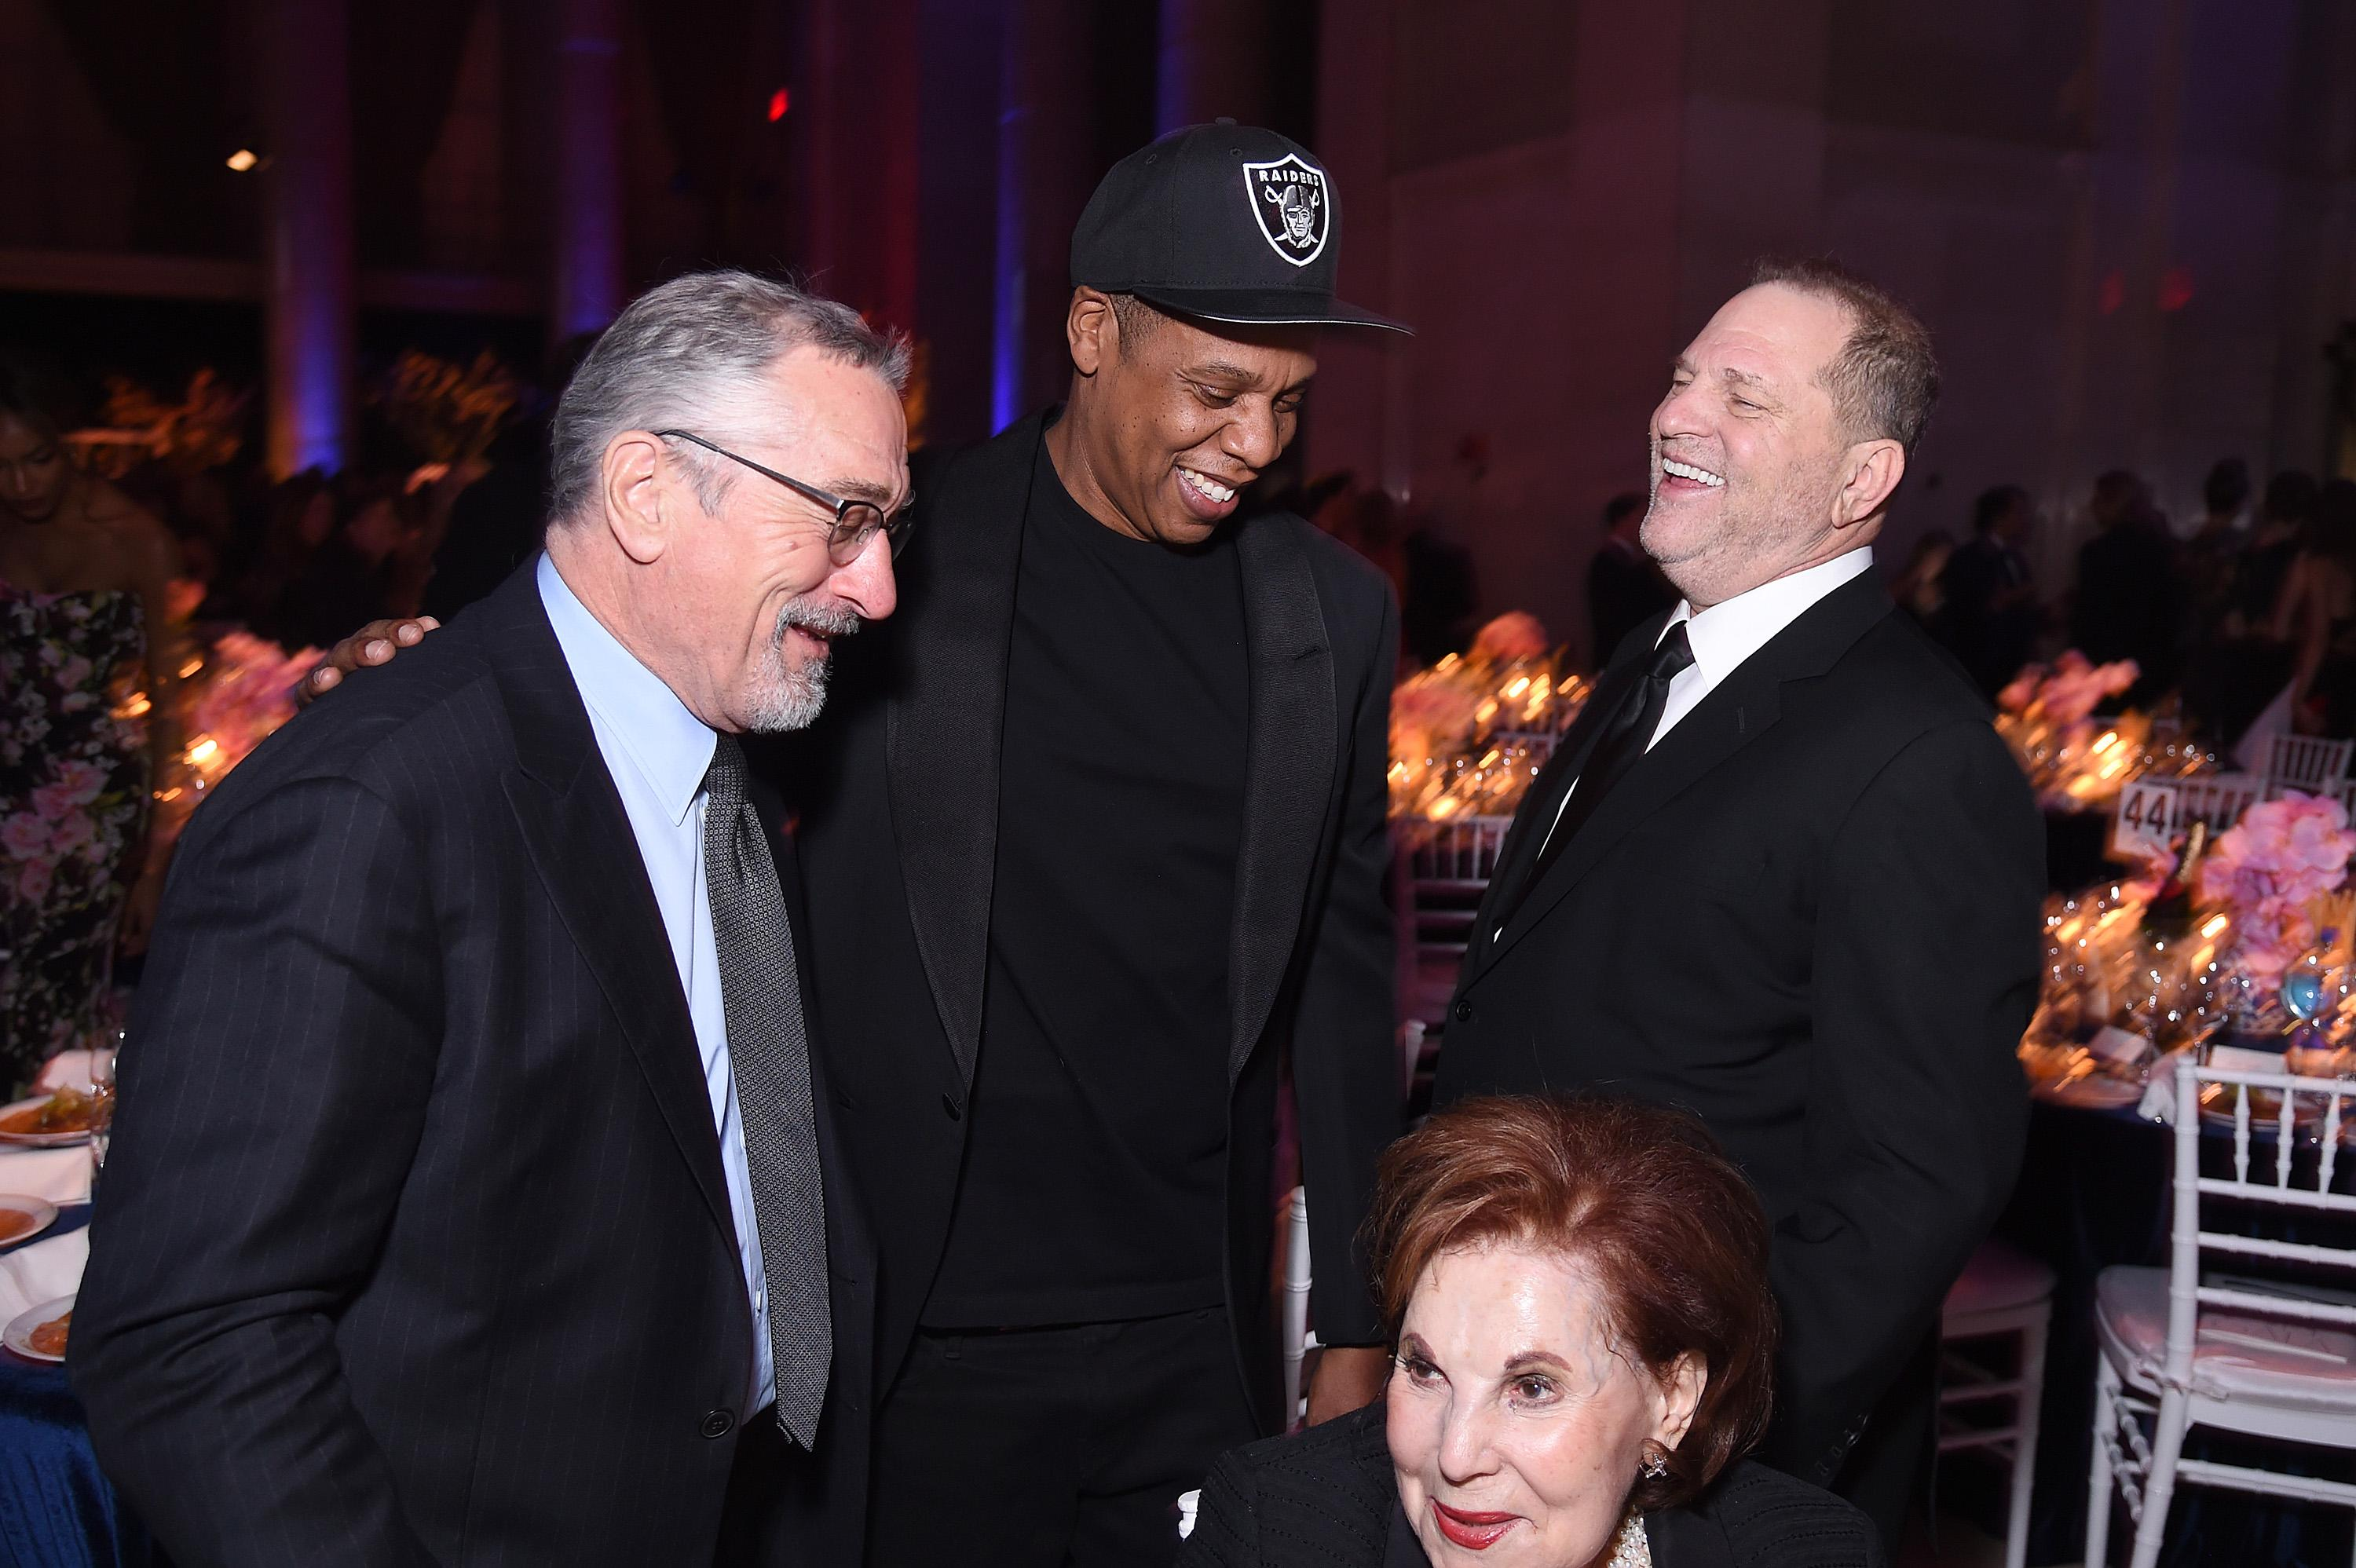 Robert De Niro Jokes Around With Honoree Harvey Weinstein at amfAR New York Gala